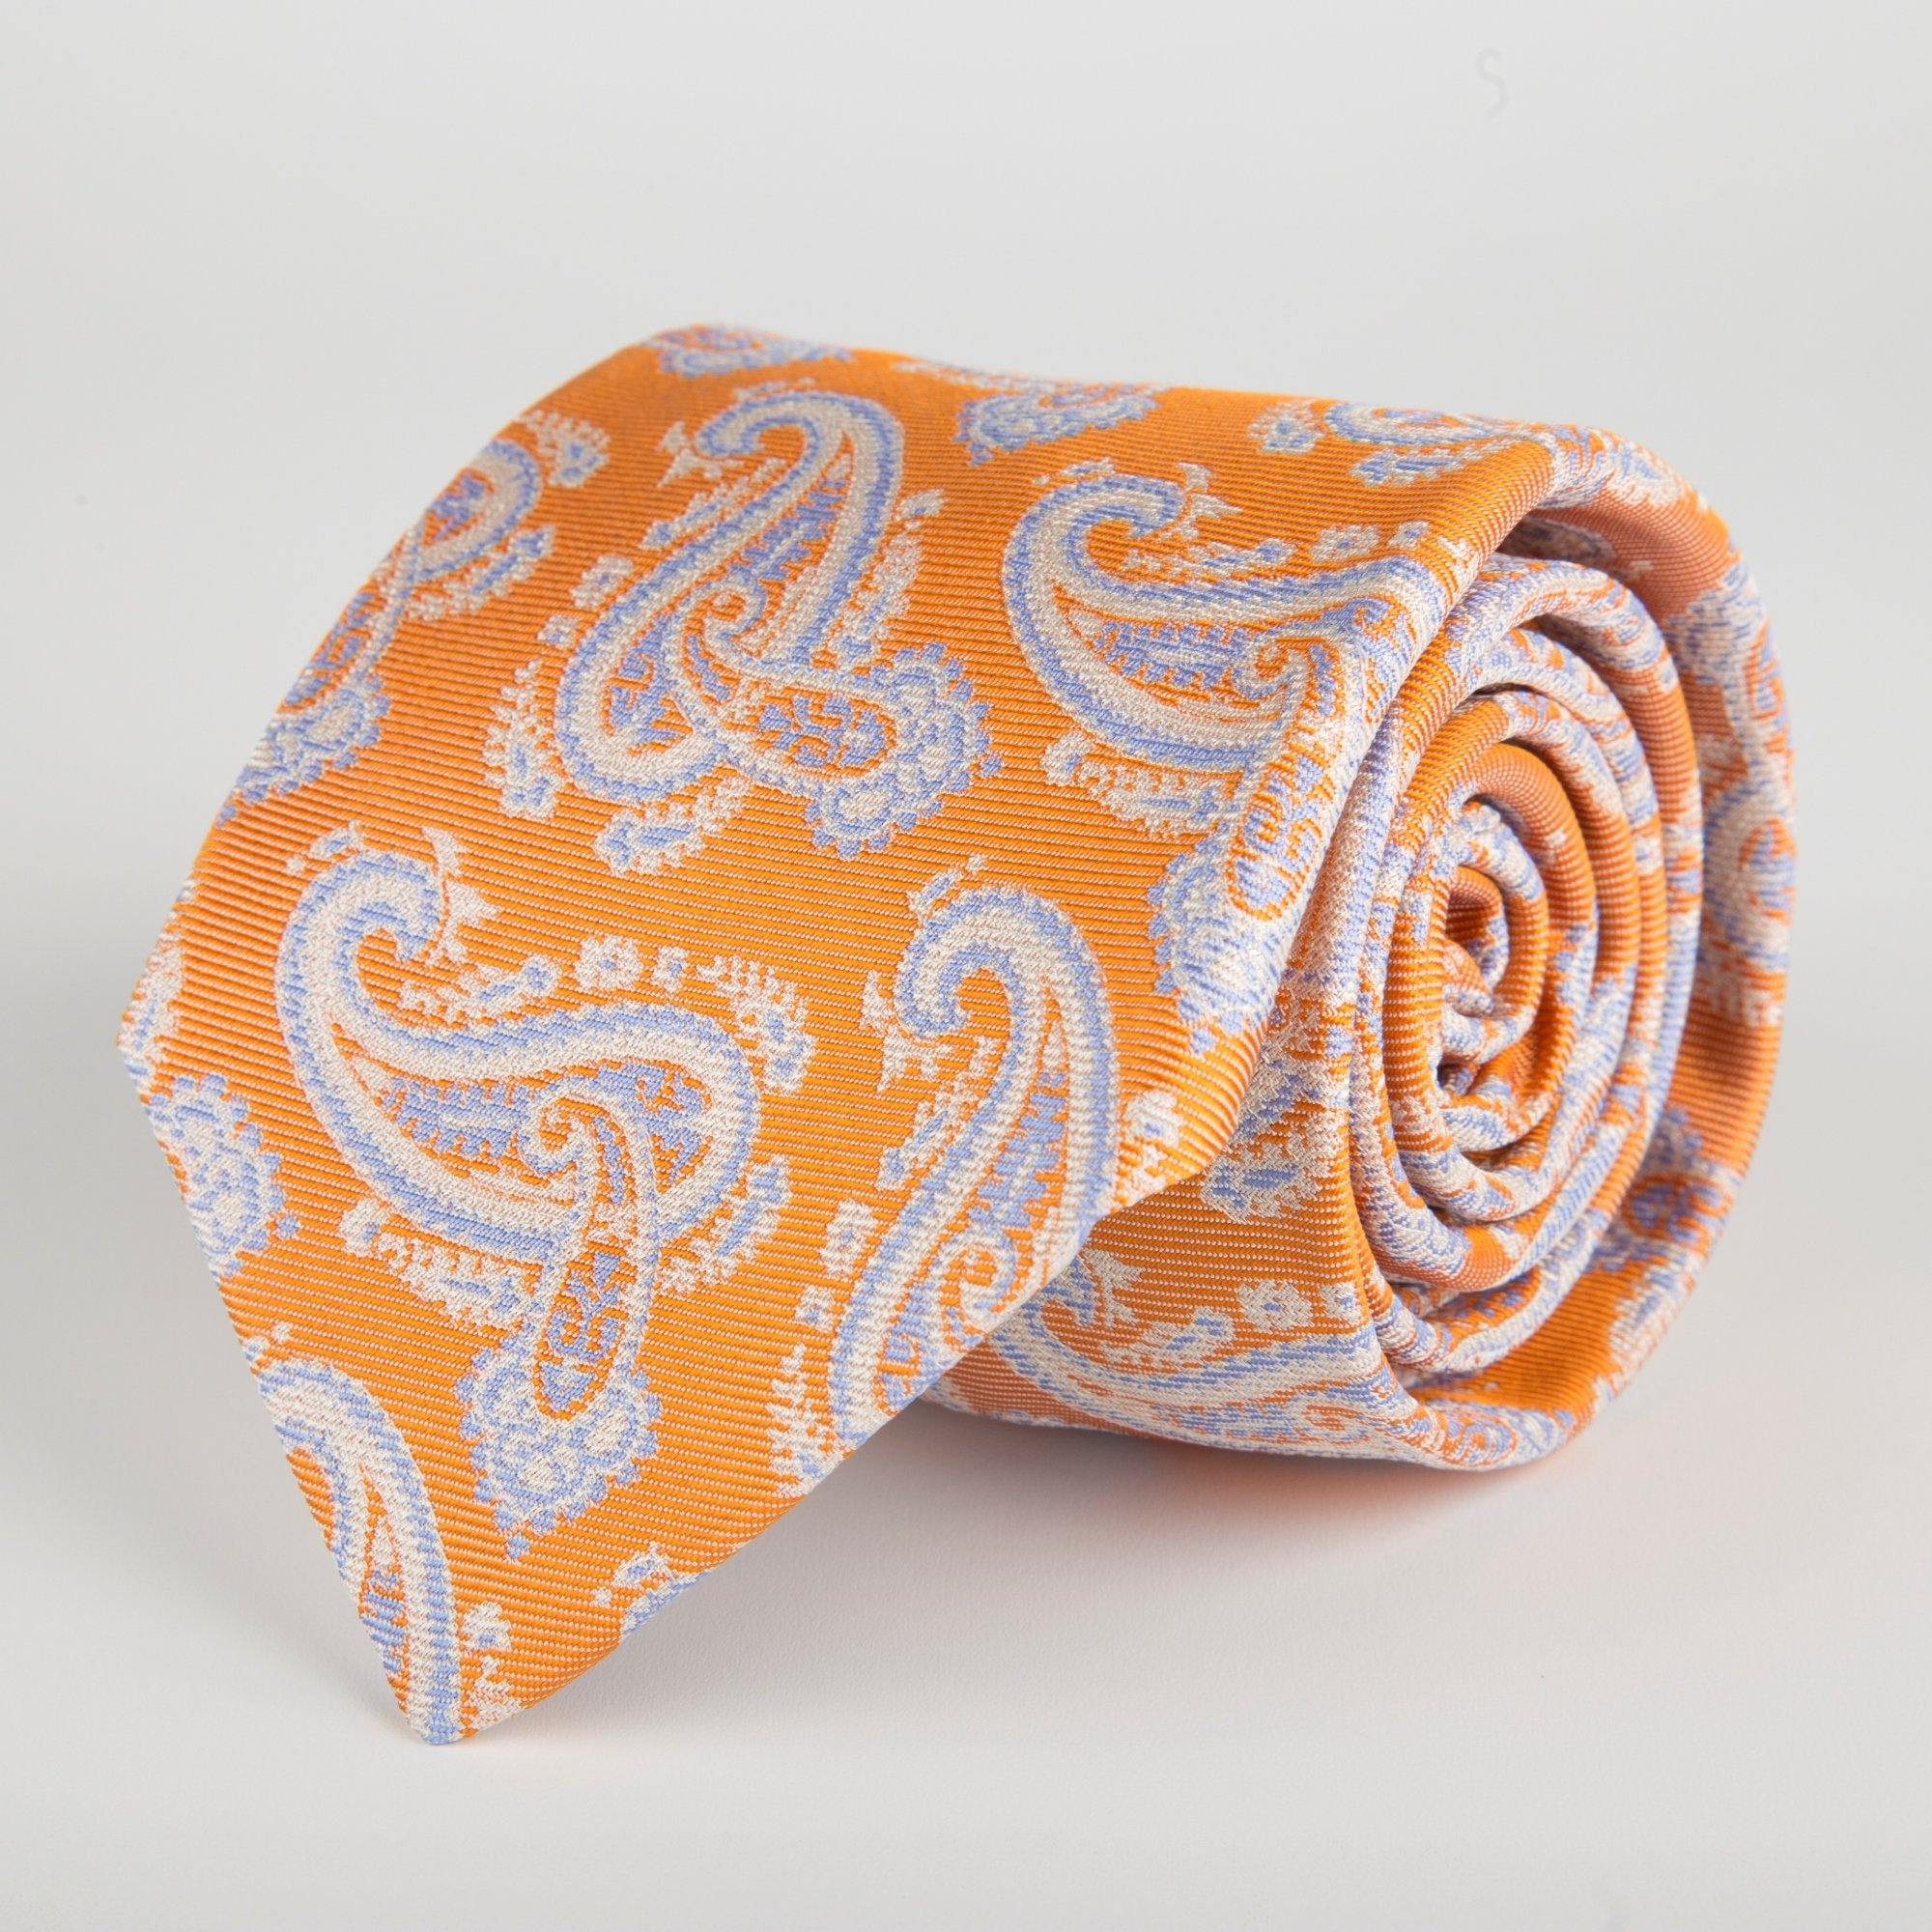 Orange Floral Paisley Woven Silk Tie Hand Finished - British Made